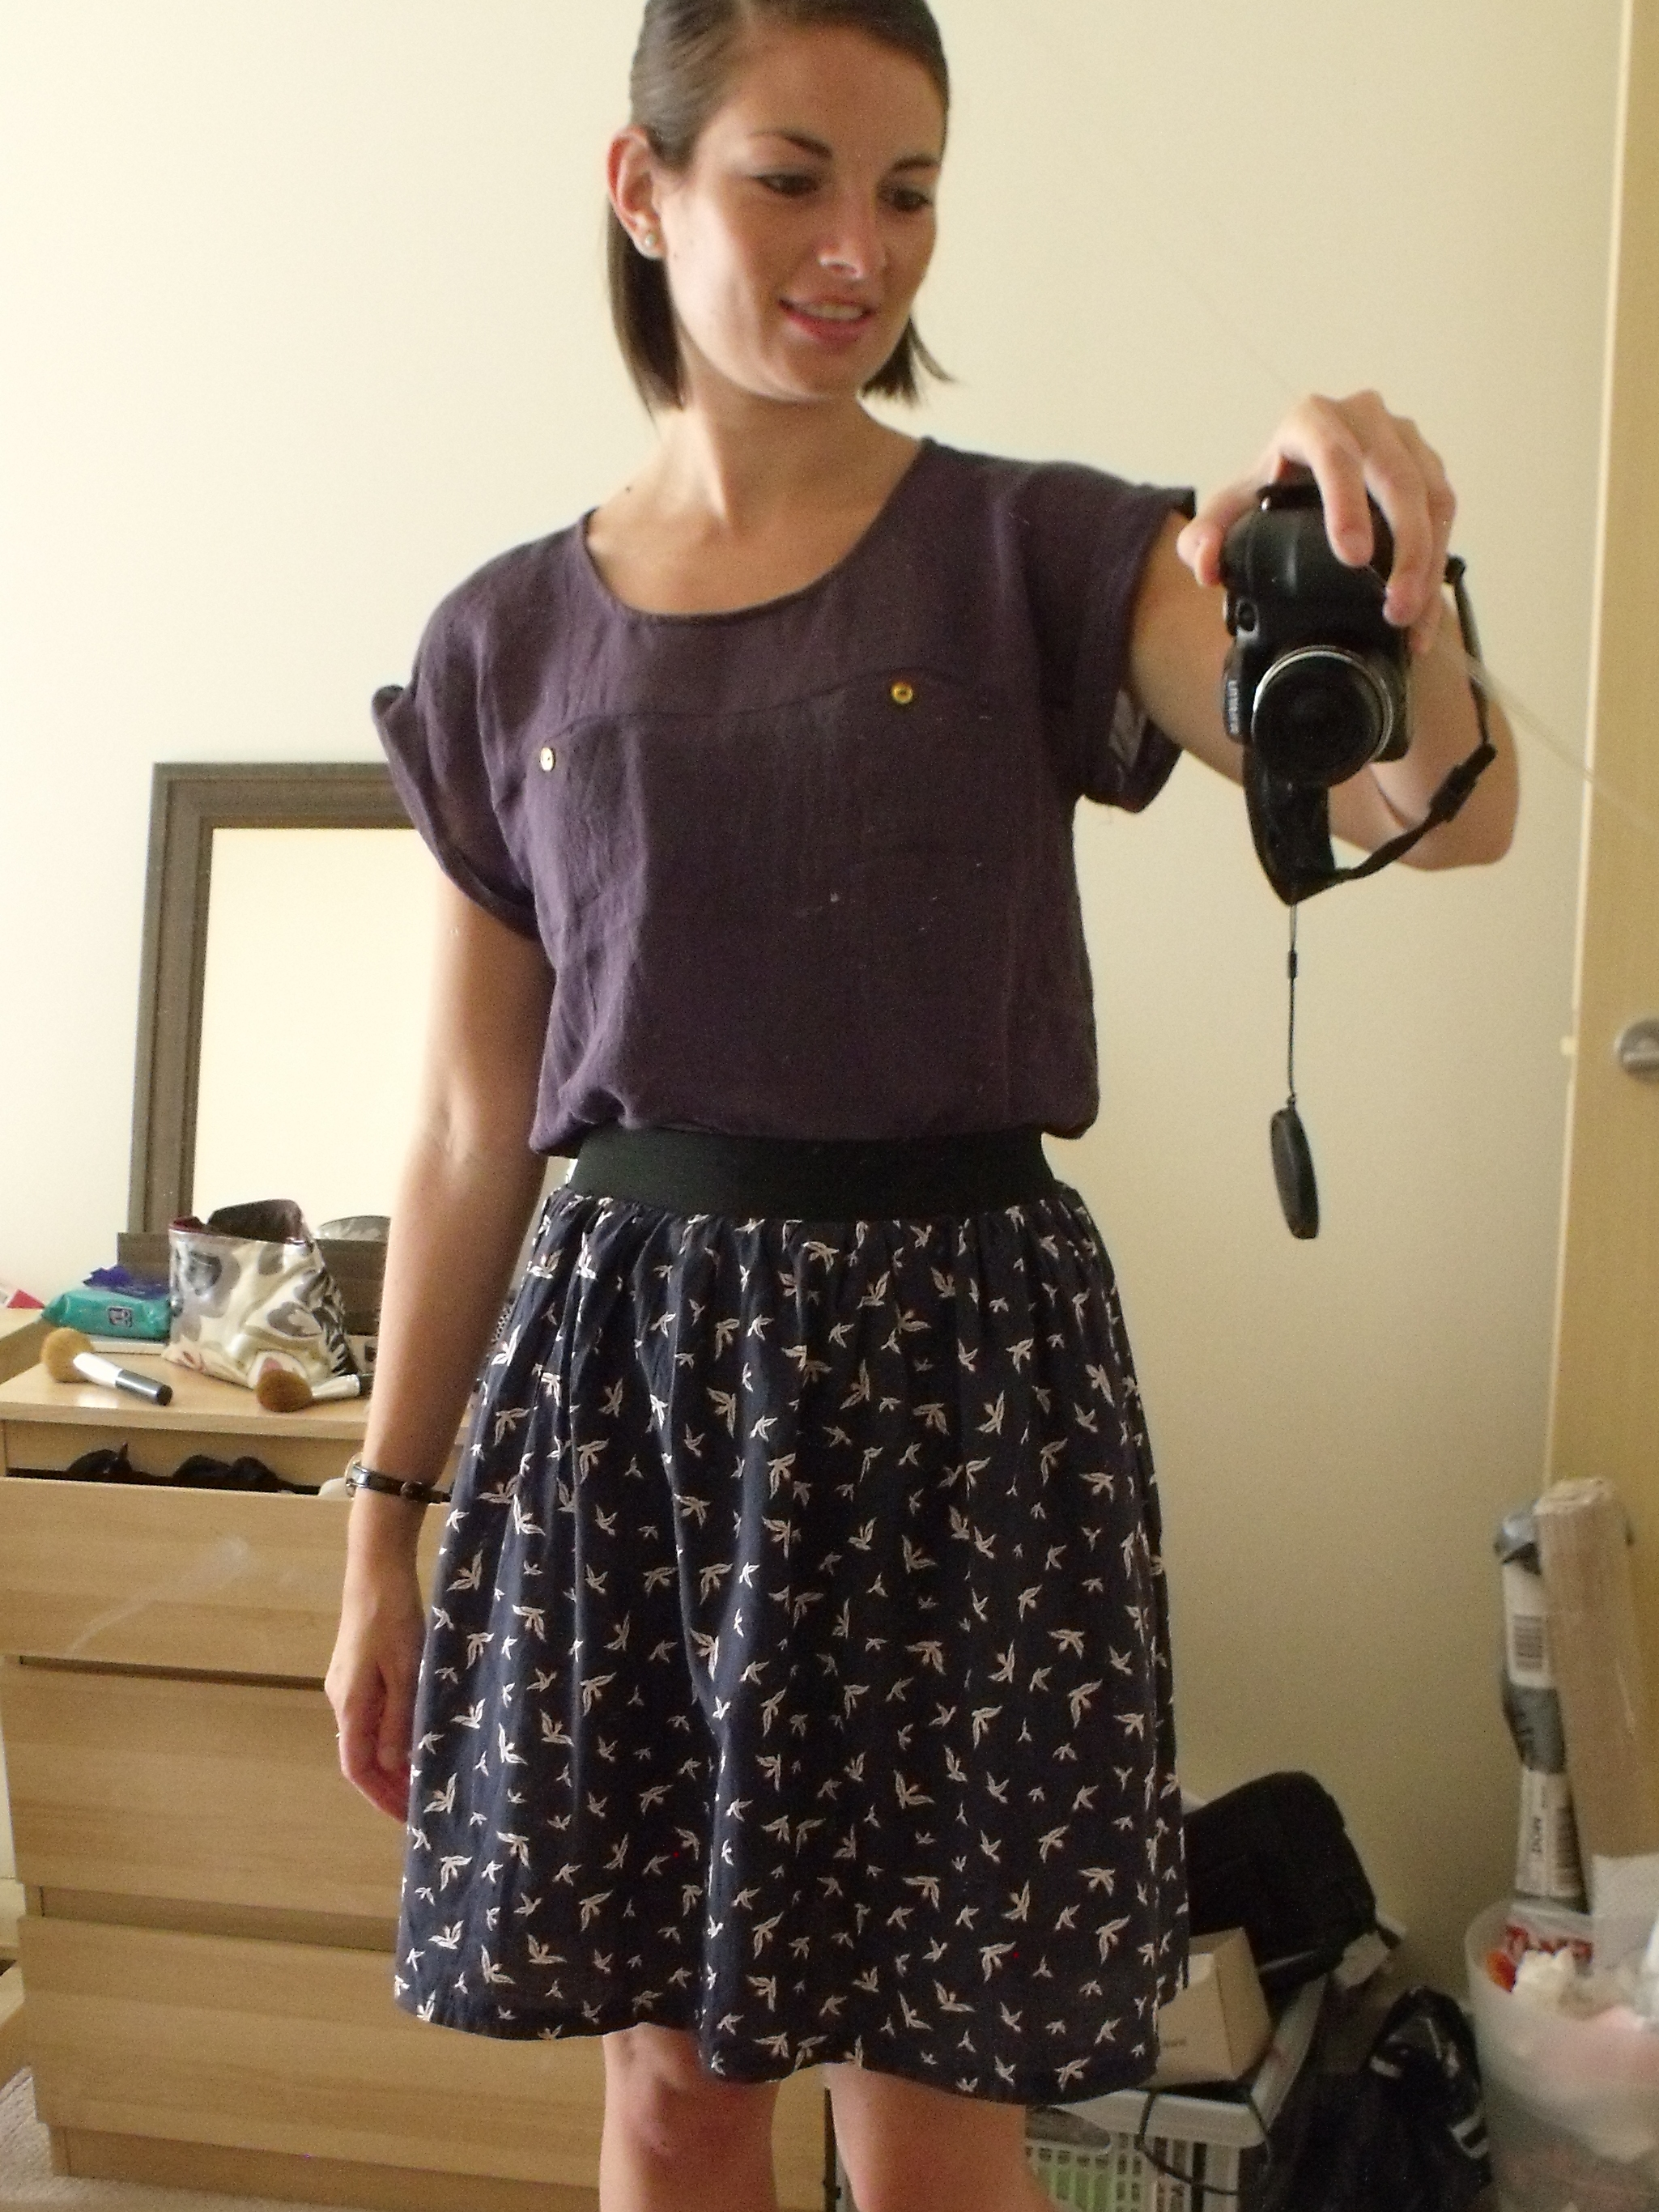 Exposed Elastic Waistband Skirt Sewing Projects